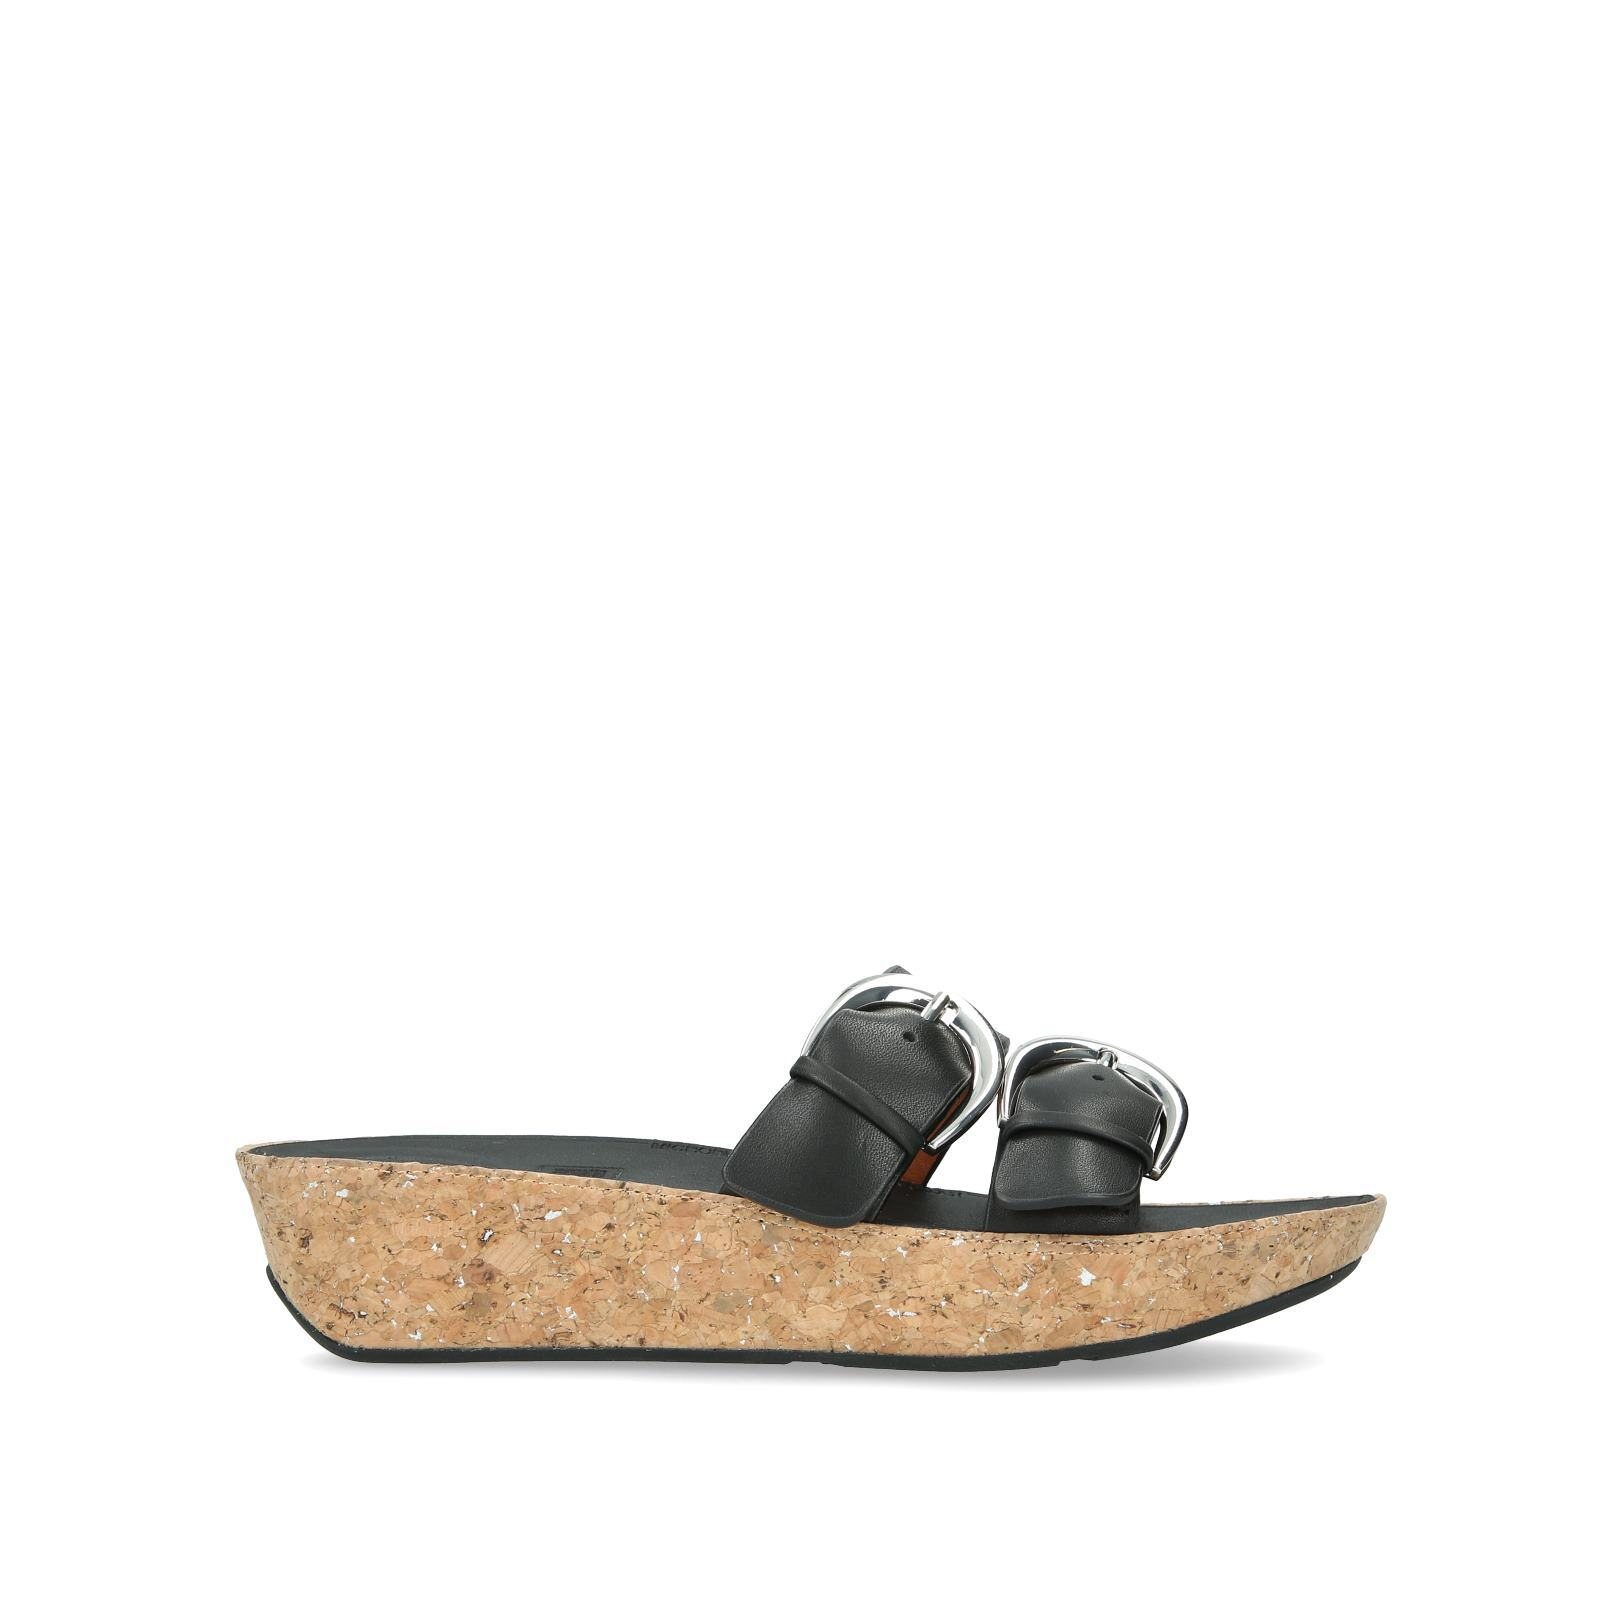 5f62cfc015b4 DUO-BUCKLE SLIDE SANDALS by FITFLOP